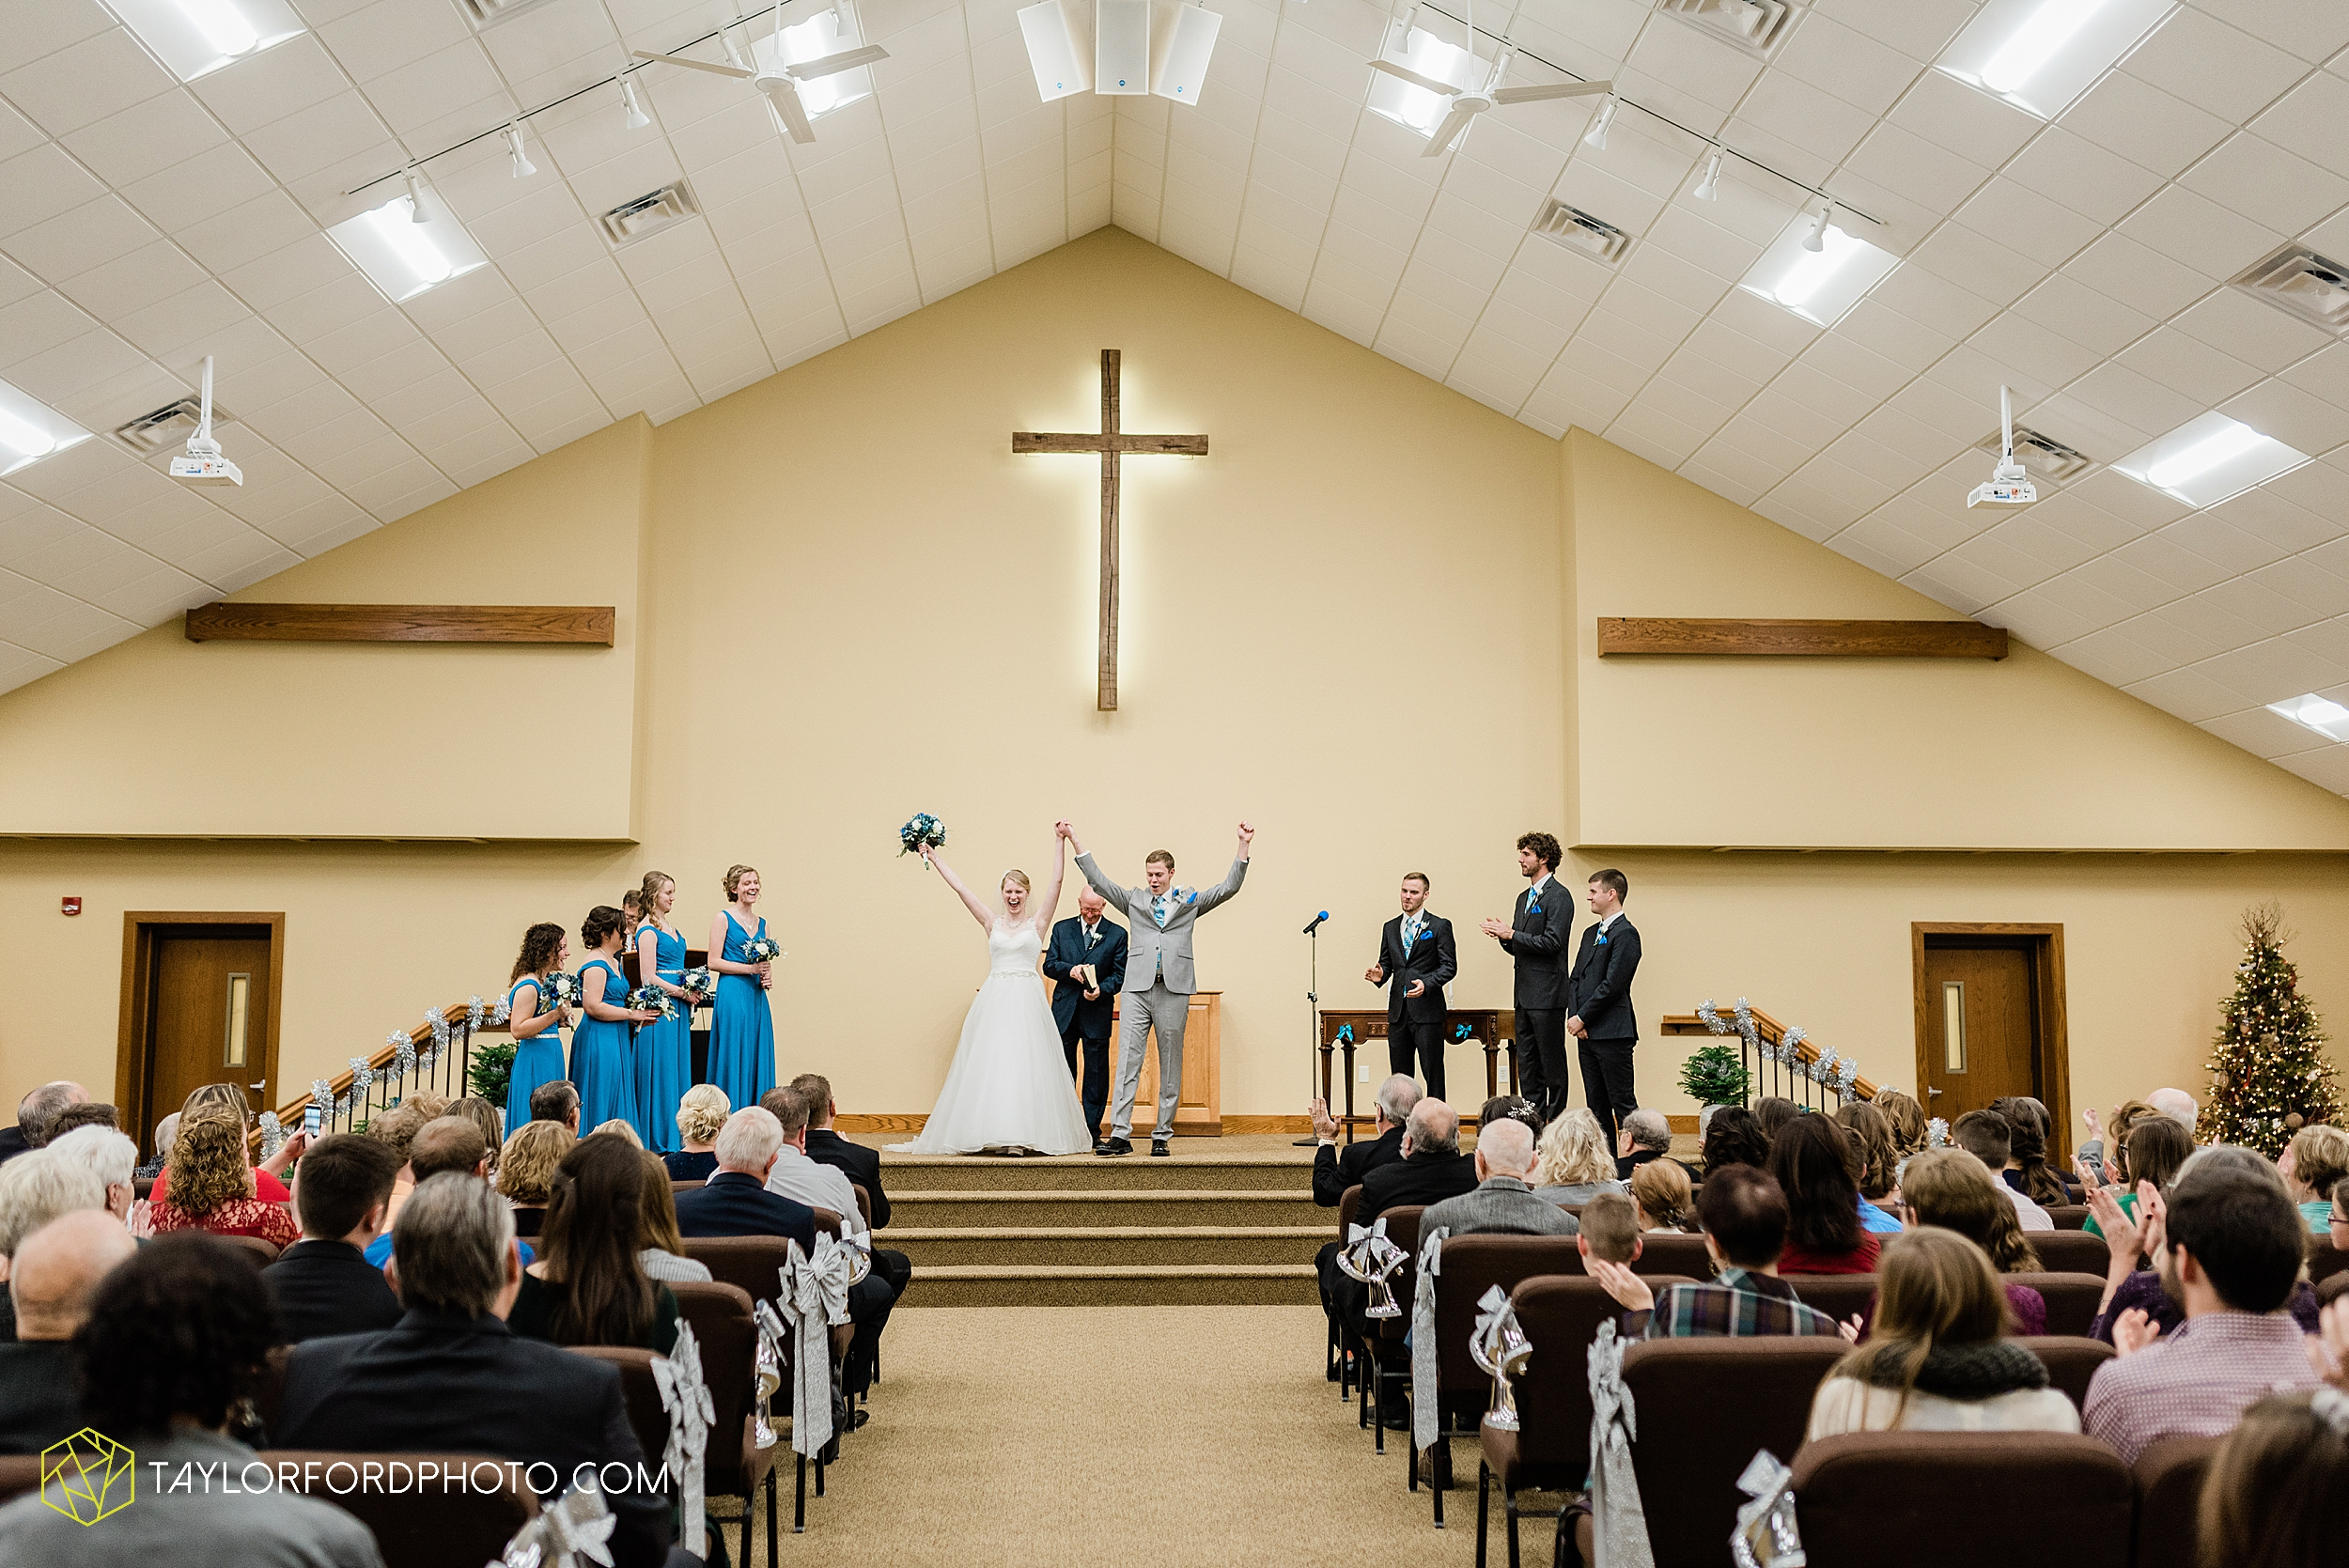 pleasant-view-church-christmas-celina-fraternal-order-of-eagles-reception-wedding-wren-willshire-van-wert-ohio-photography-taylor-ford-hirschy-photographer_2155.jpg